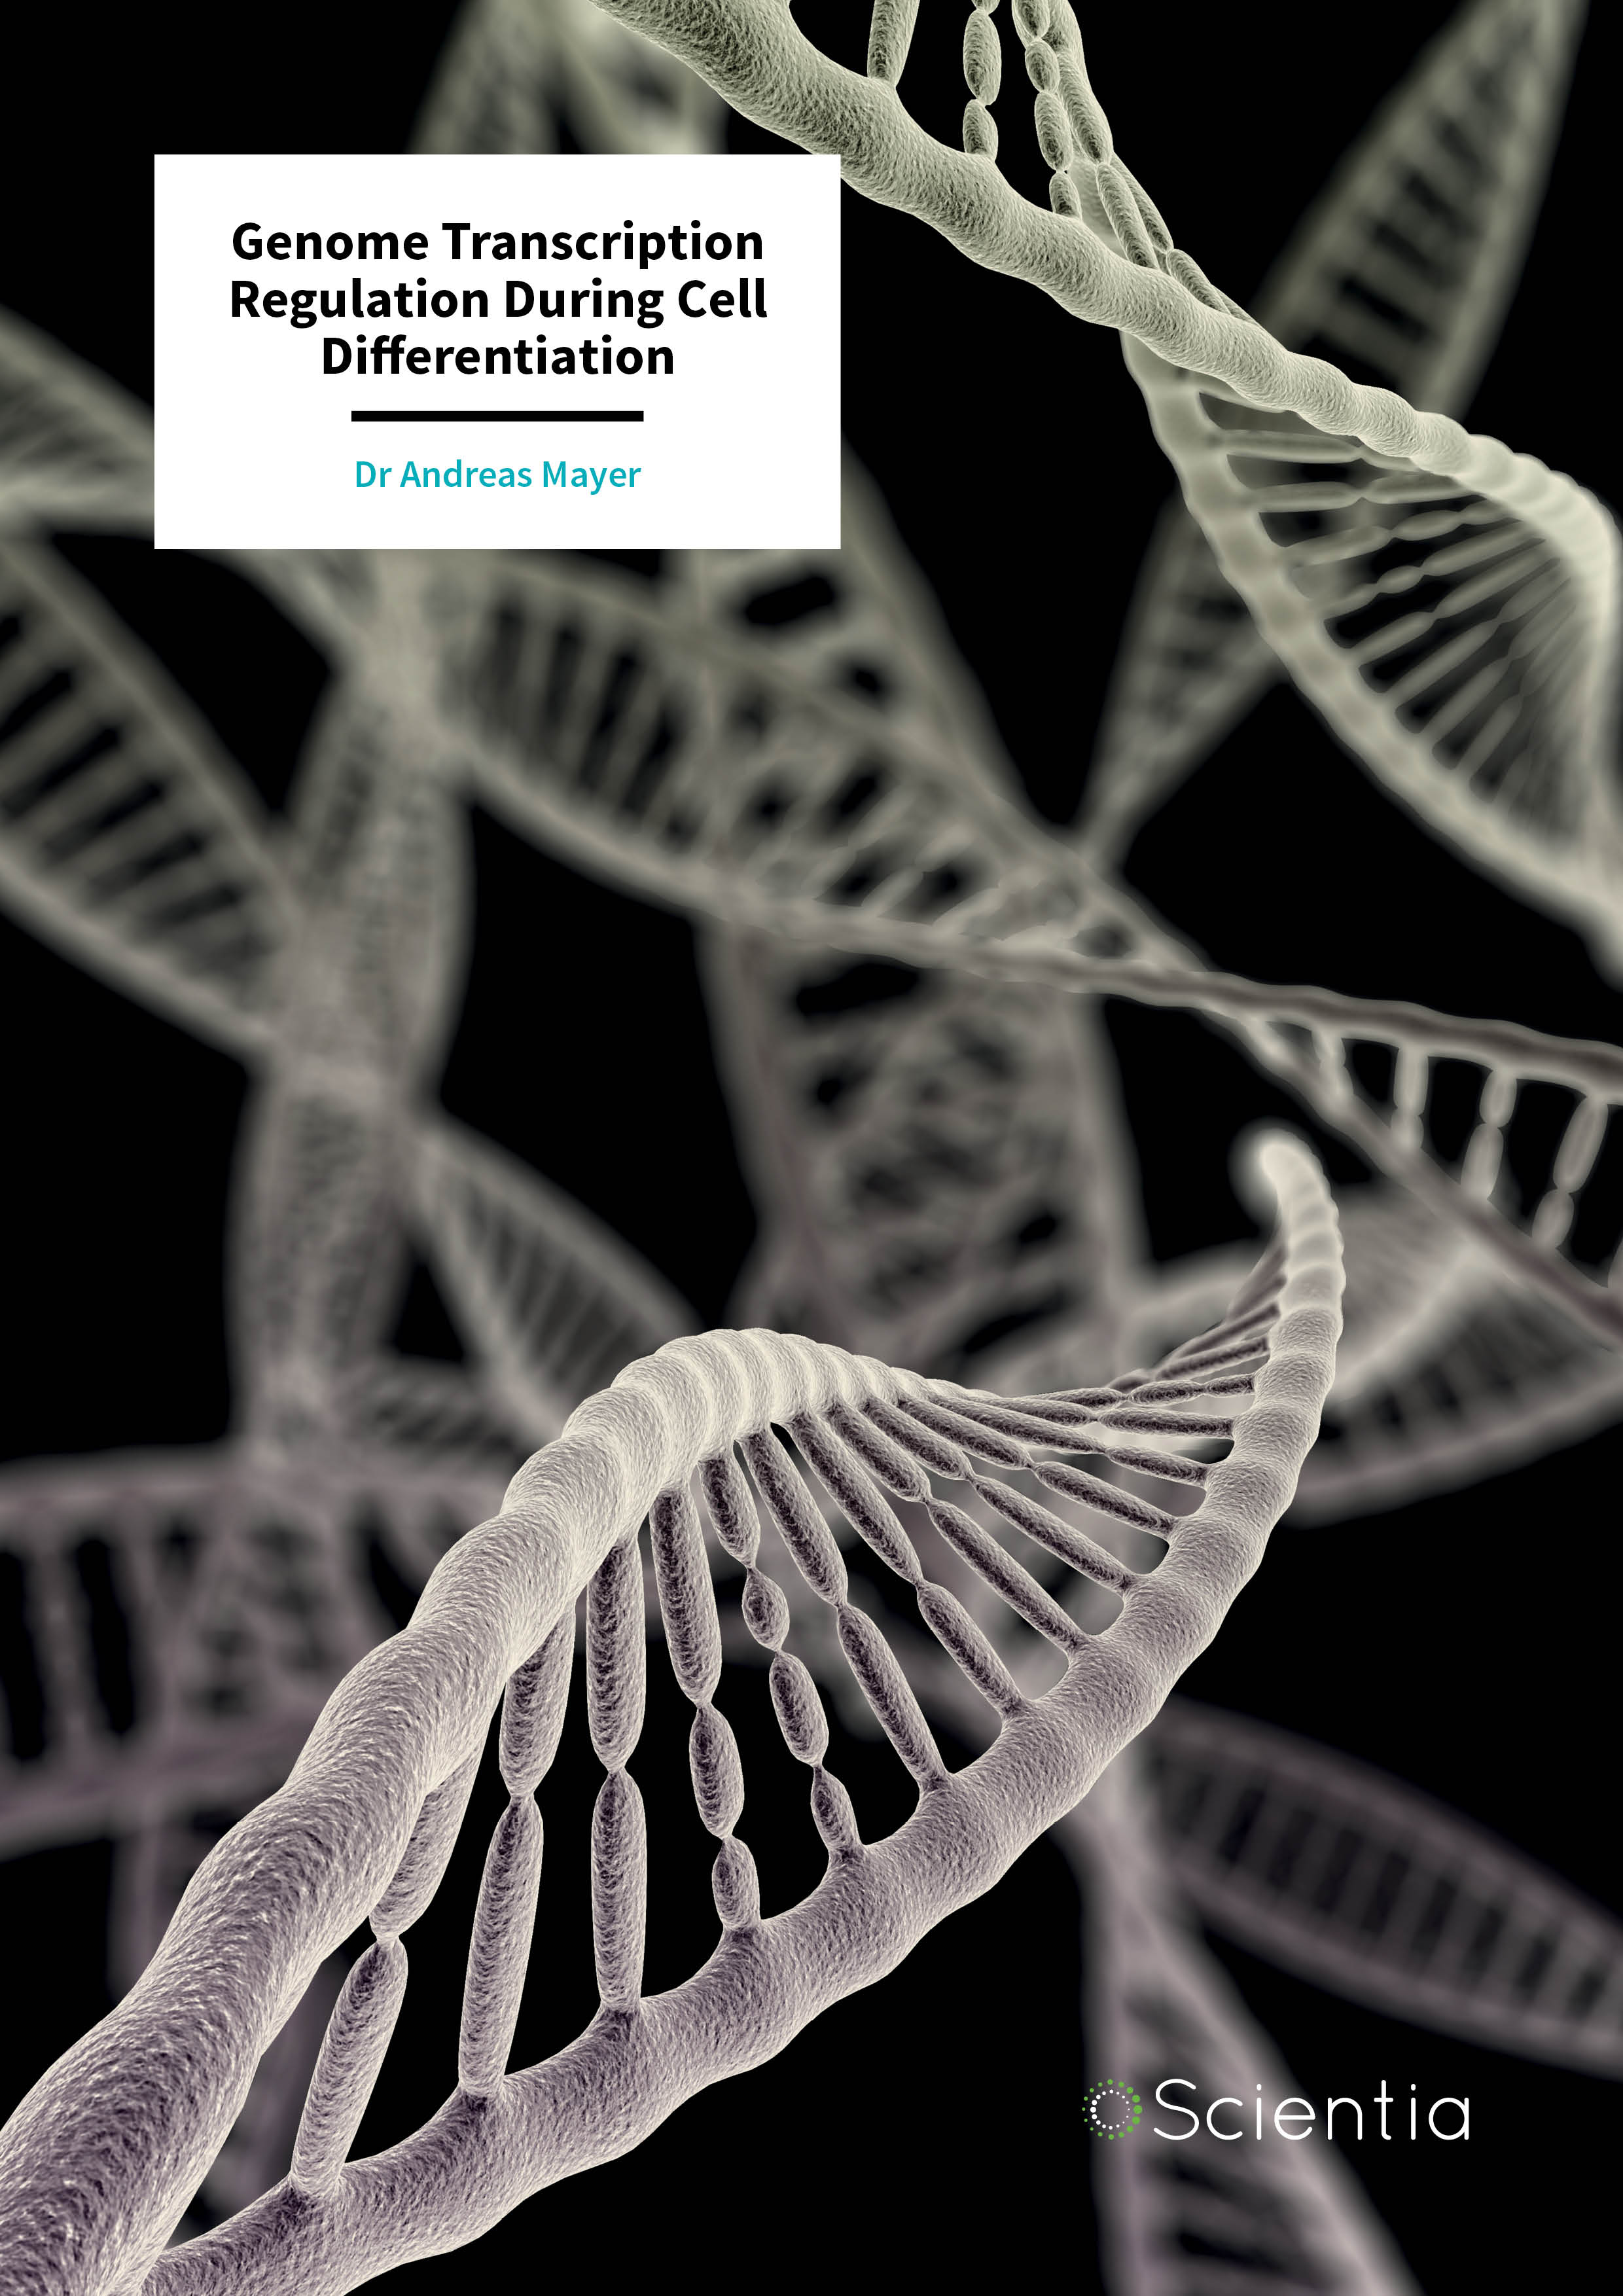 Dr Andreas Mayer – Genome Transcription Regulation During Cell Differentiation